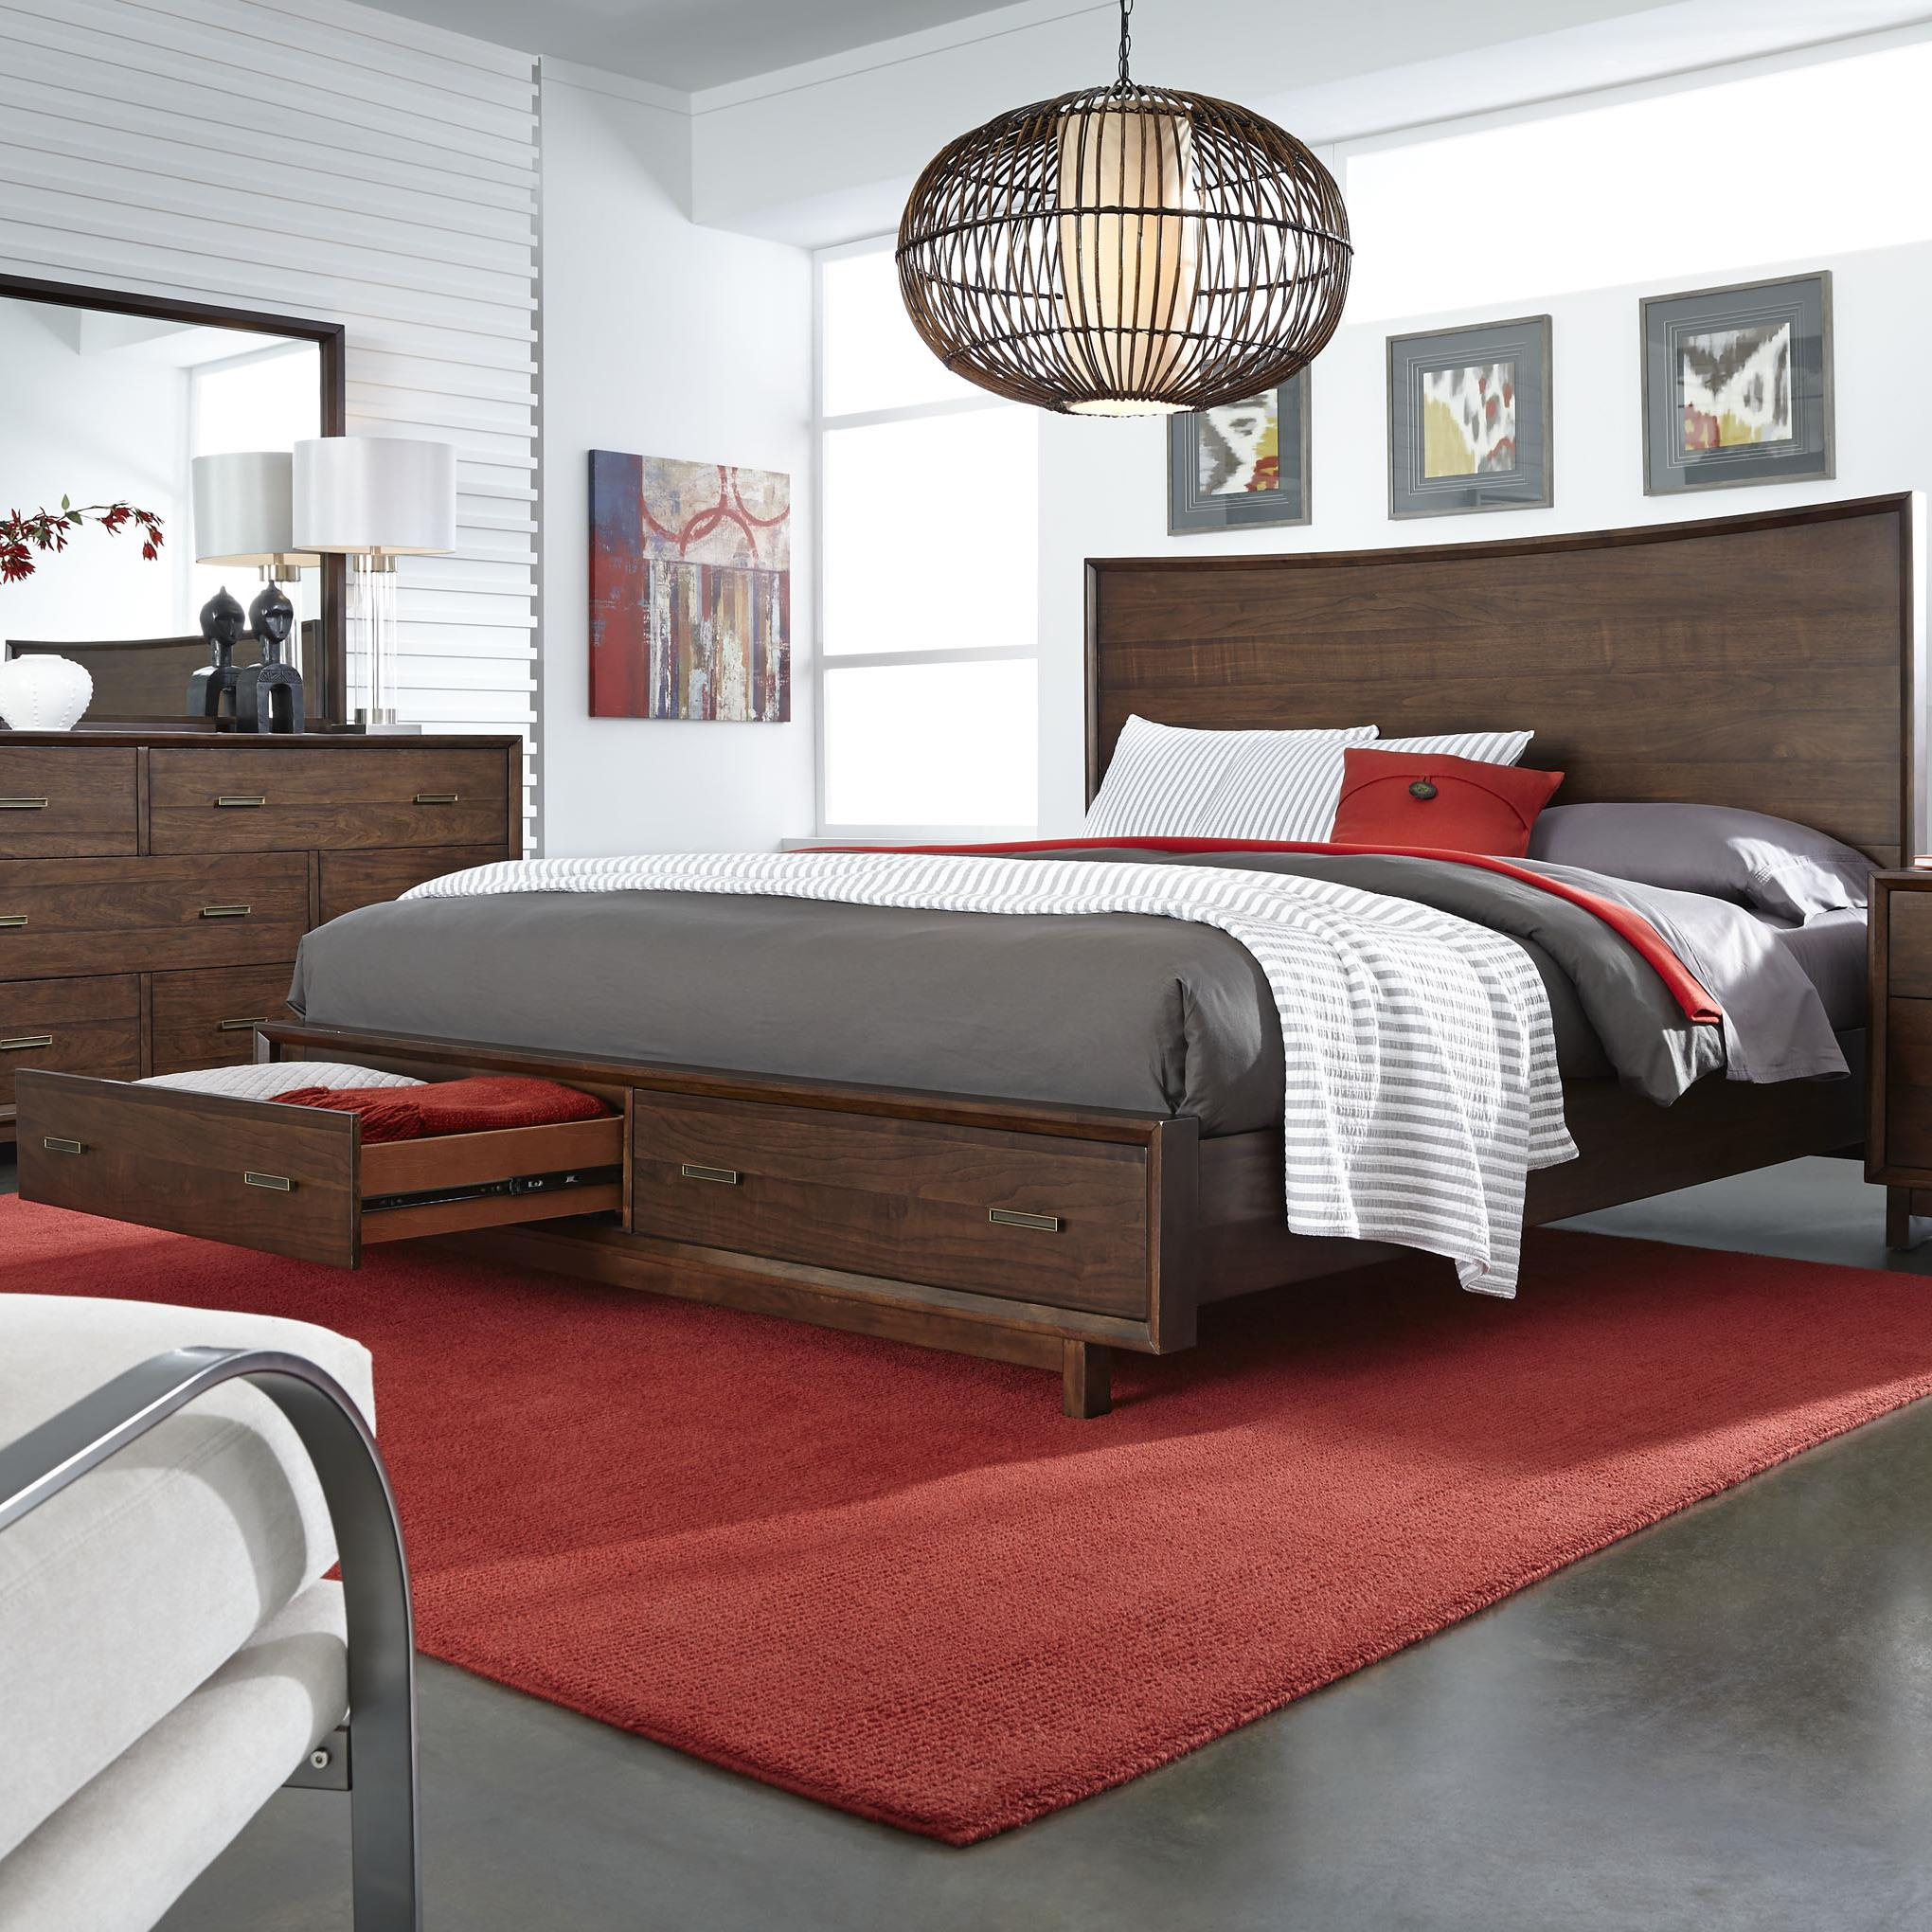 Aspenhome Walnut Heights King Panel Storage Bed - Item Number: IWH-415+407D+406